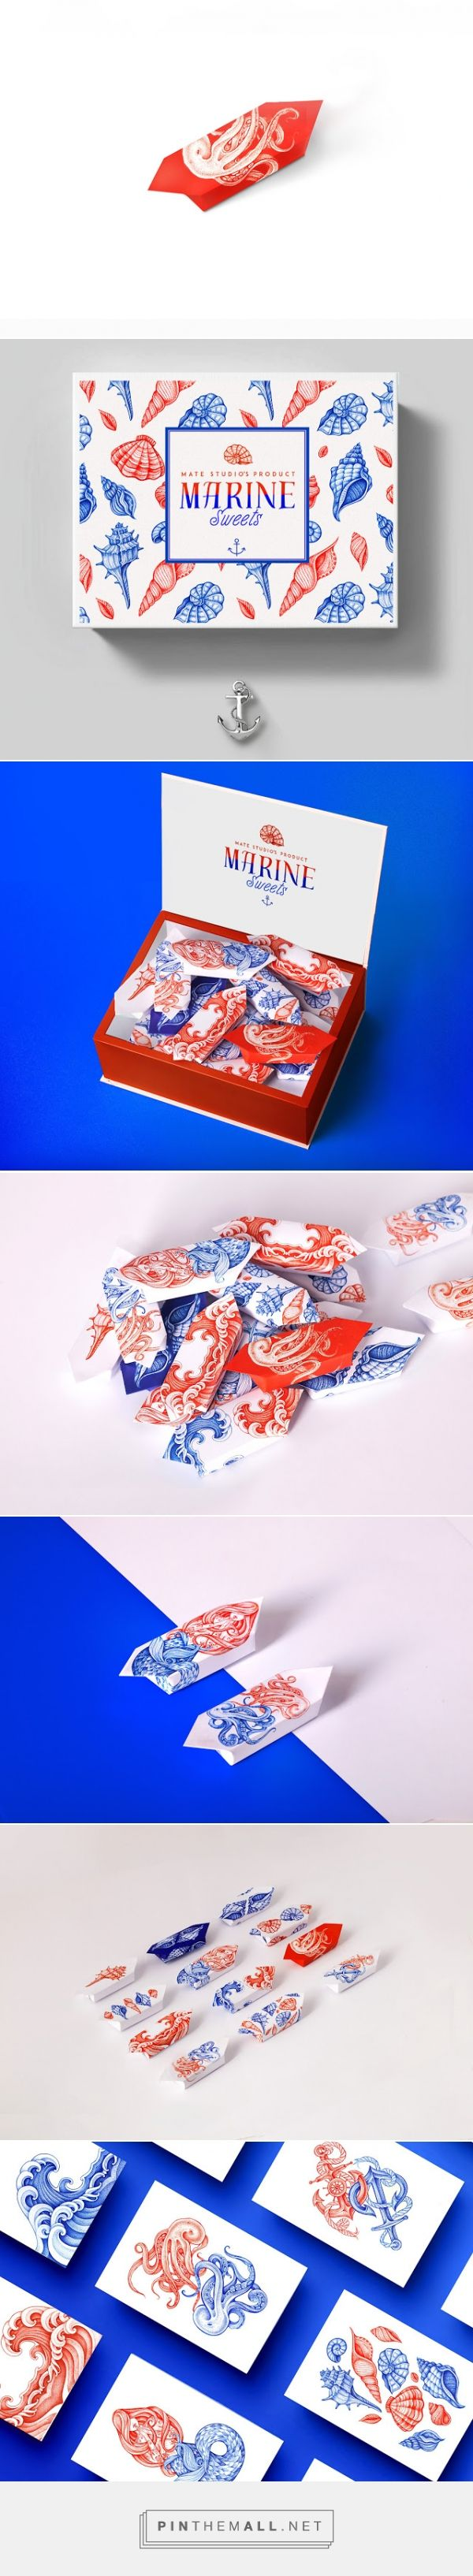 Marine Sweets (Concept)  - Packaging of the World - Creative Package Design Gallery - http://www.packagingoftheworld.com/2015/05/marine-sweets-concept.html